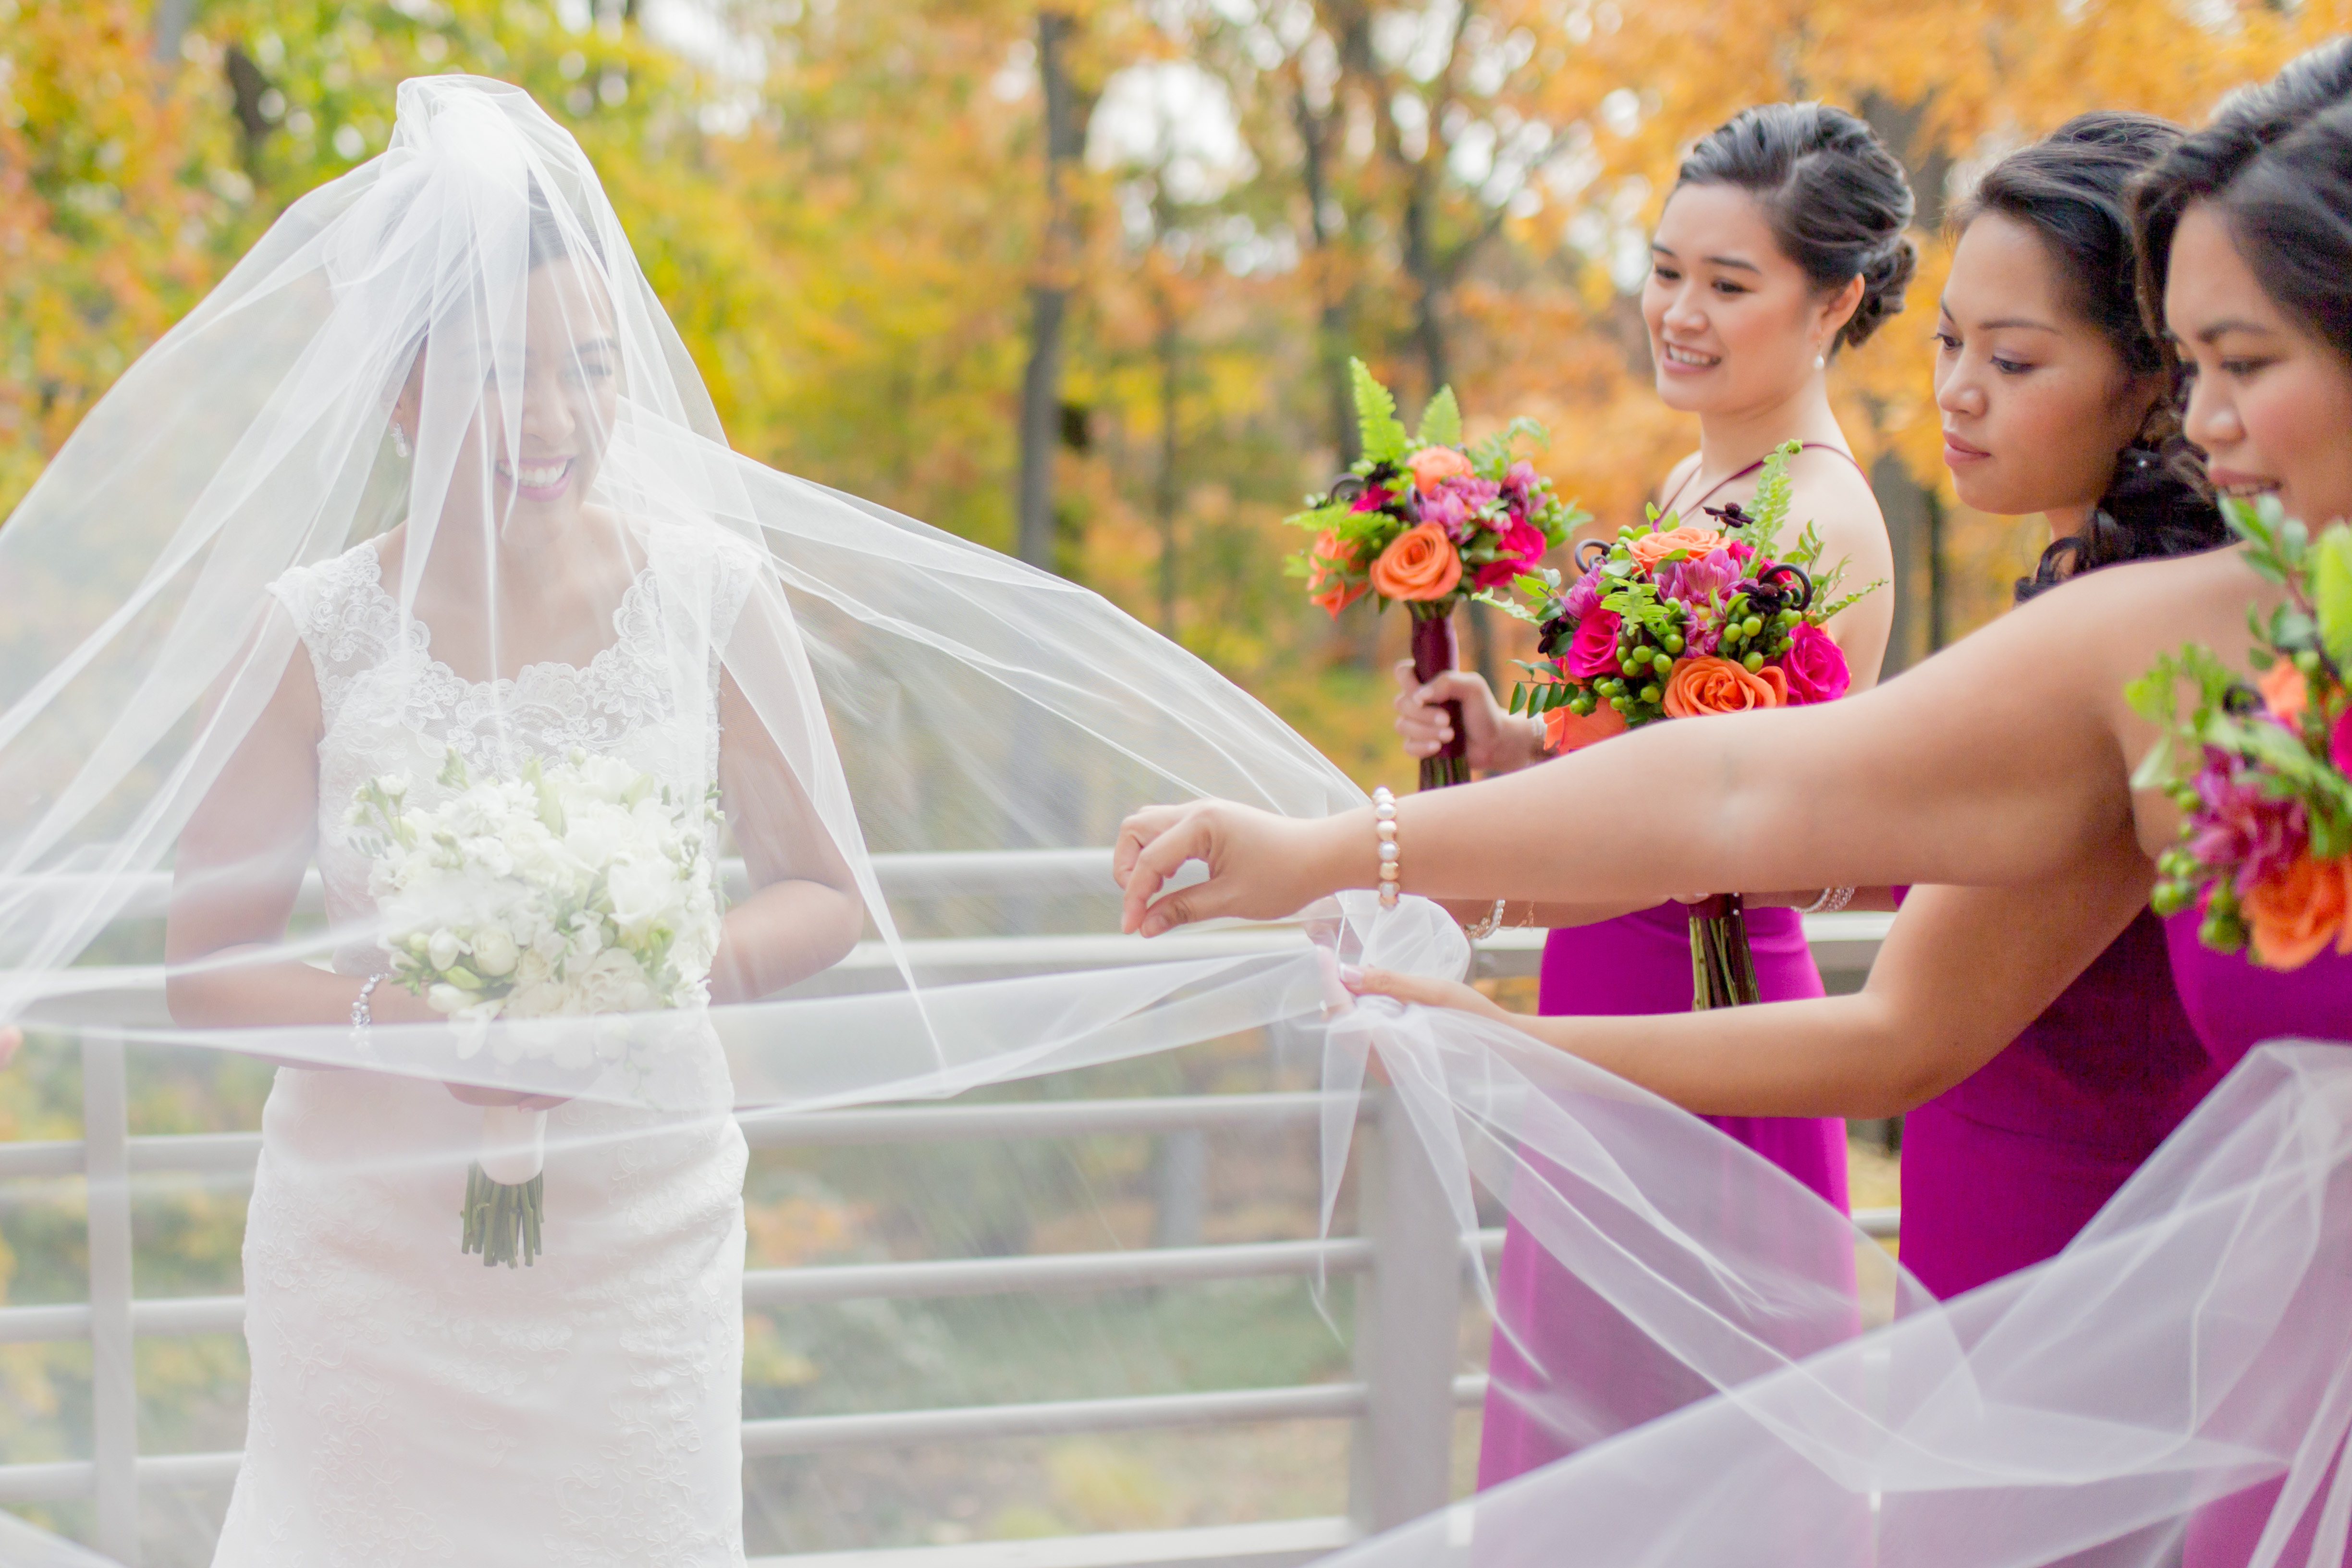 bridesmaids holding veil for bride